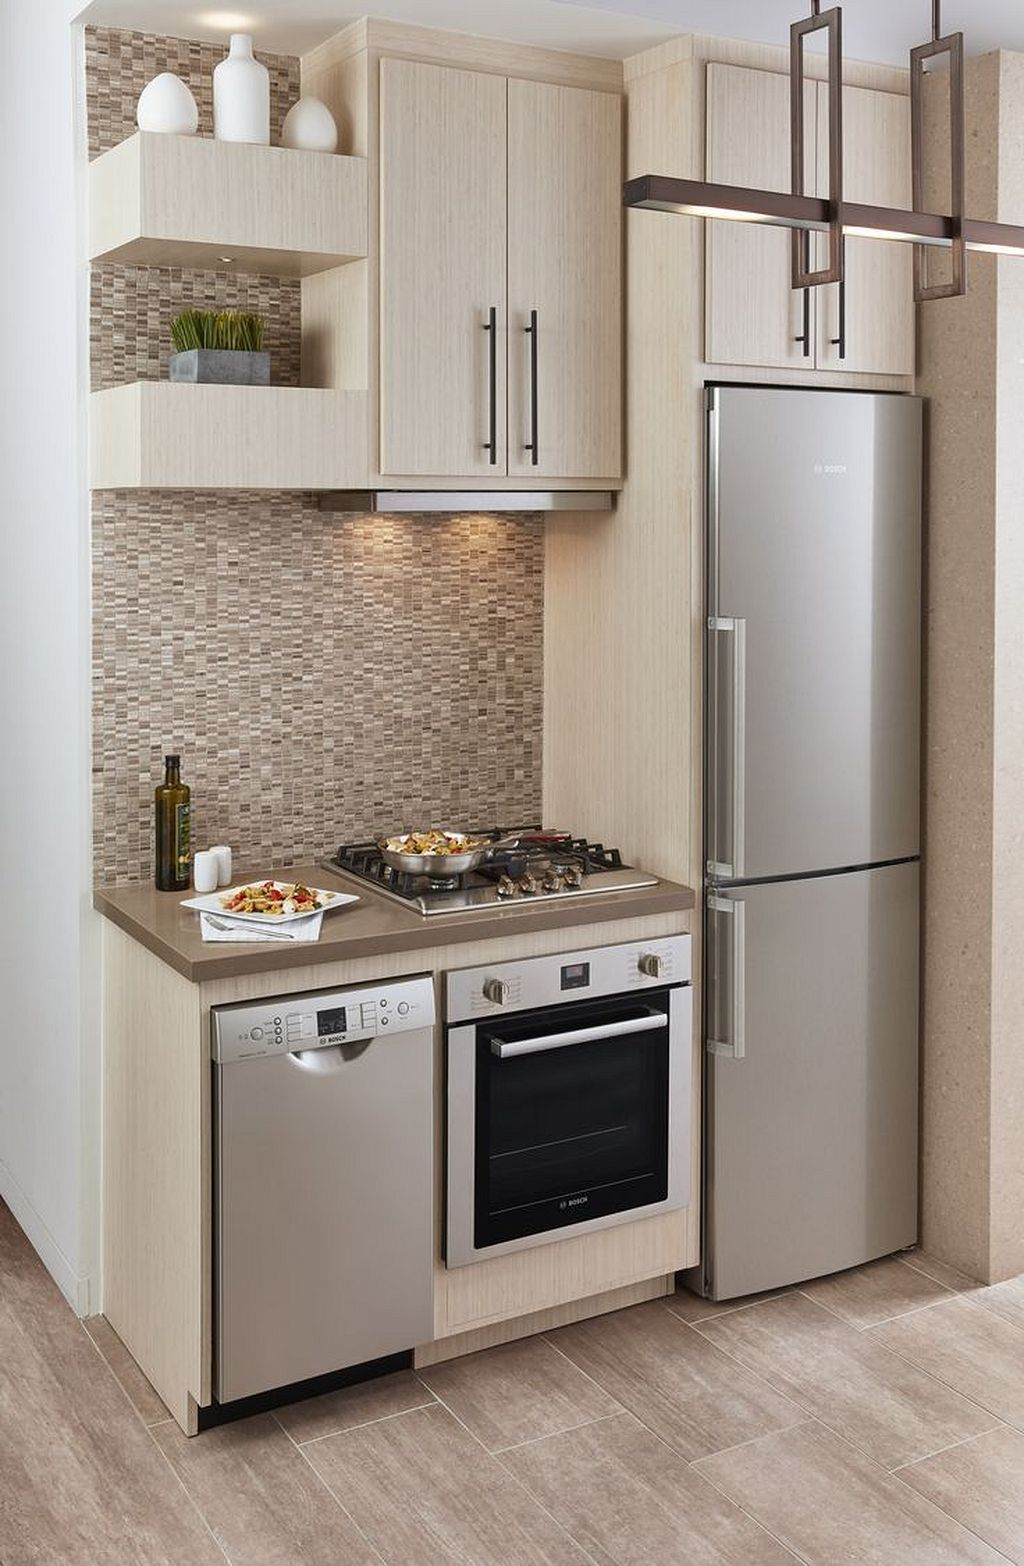 27 Tiny House Hacks Modern And Larger Look Tiny House Kitchen